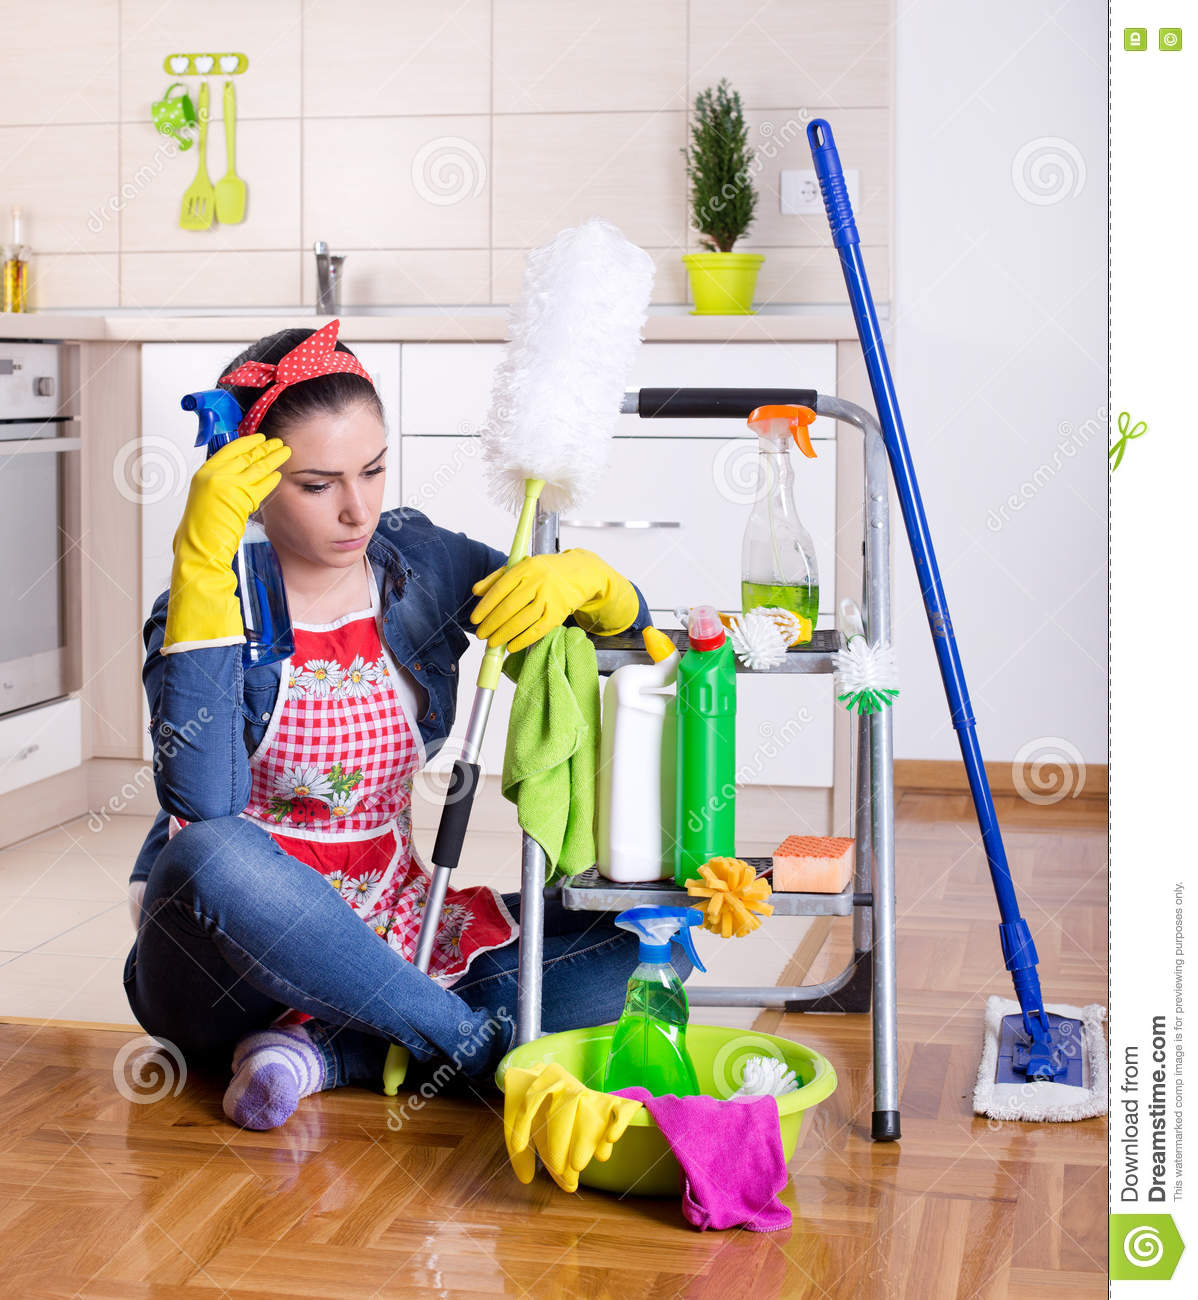 Kitchen Cleaning: Unhappy Woman With Cleaning Supplies In The Kitchen Stock